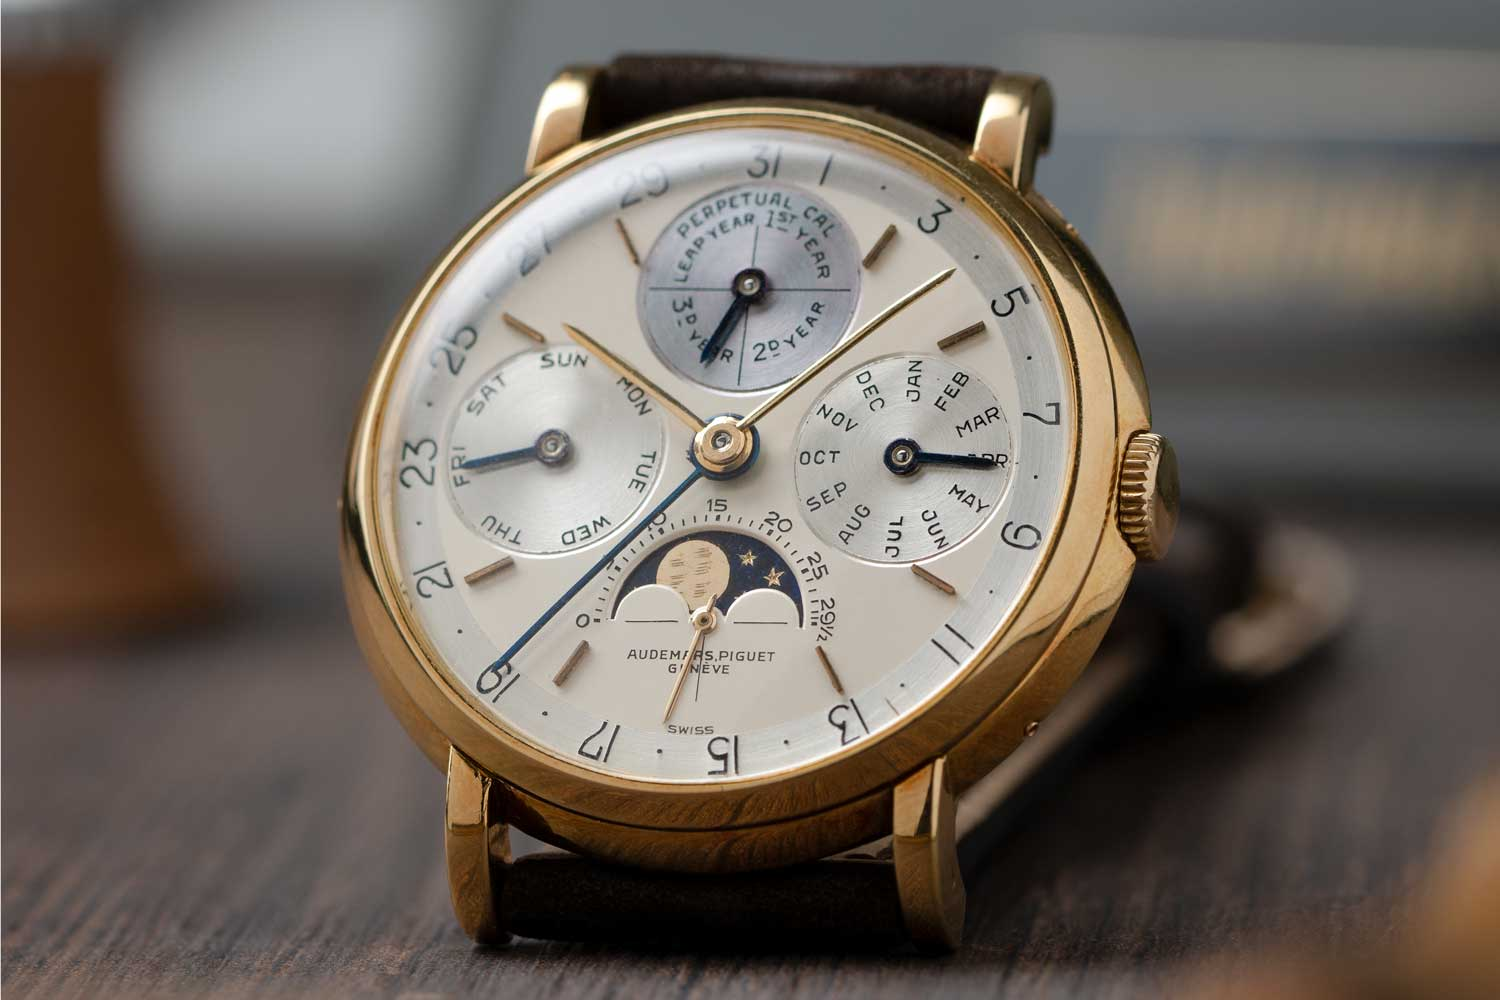 An excellent example of the Second-Series ref. 5516 with the leap-year indicator at 12 o'clock, sans the 48-month scale; the watch seen here is presently part of the Pygmalion Gallery's private collection (Image: Photo and watch, property of Pygmalion Gallery)